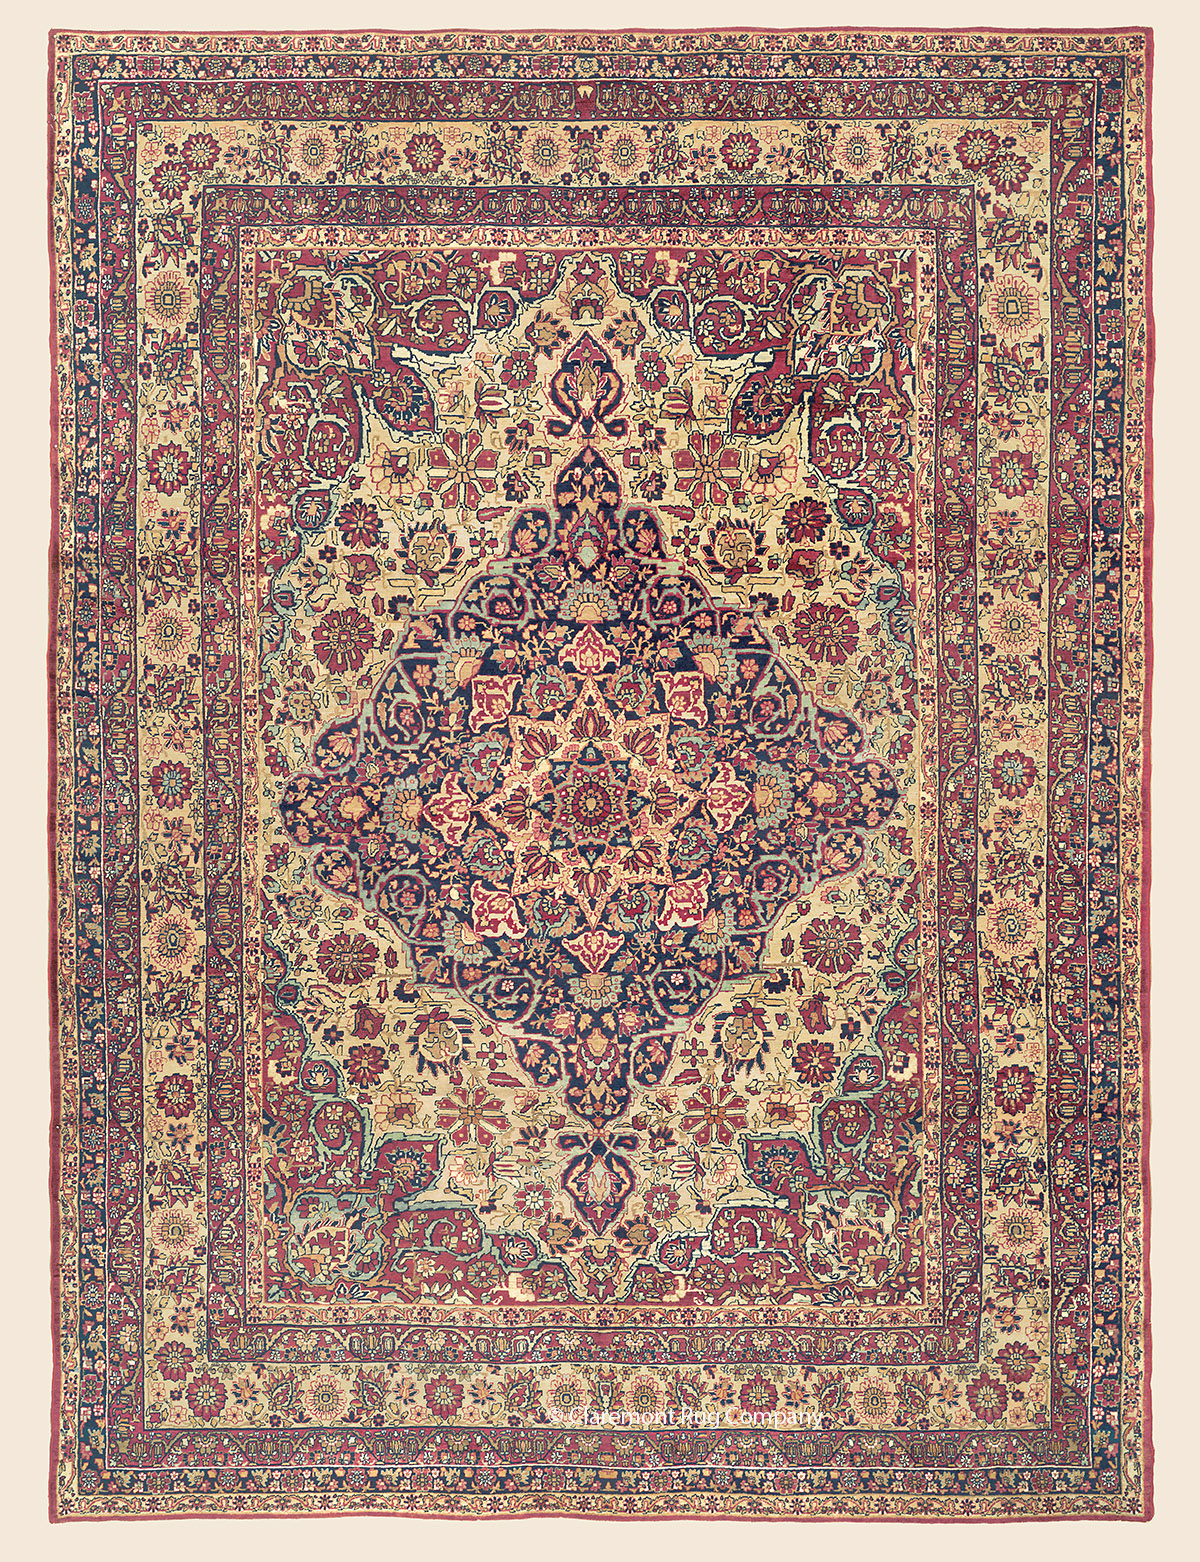 19th century Graceful Persian Laver Kirman Rug with botanical border and field